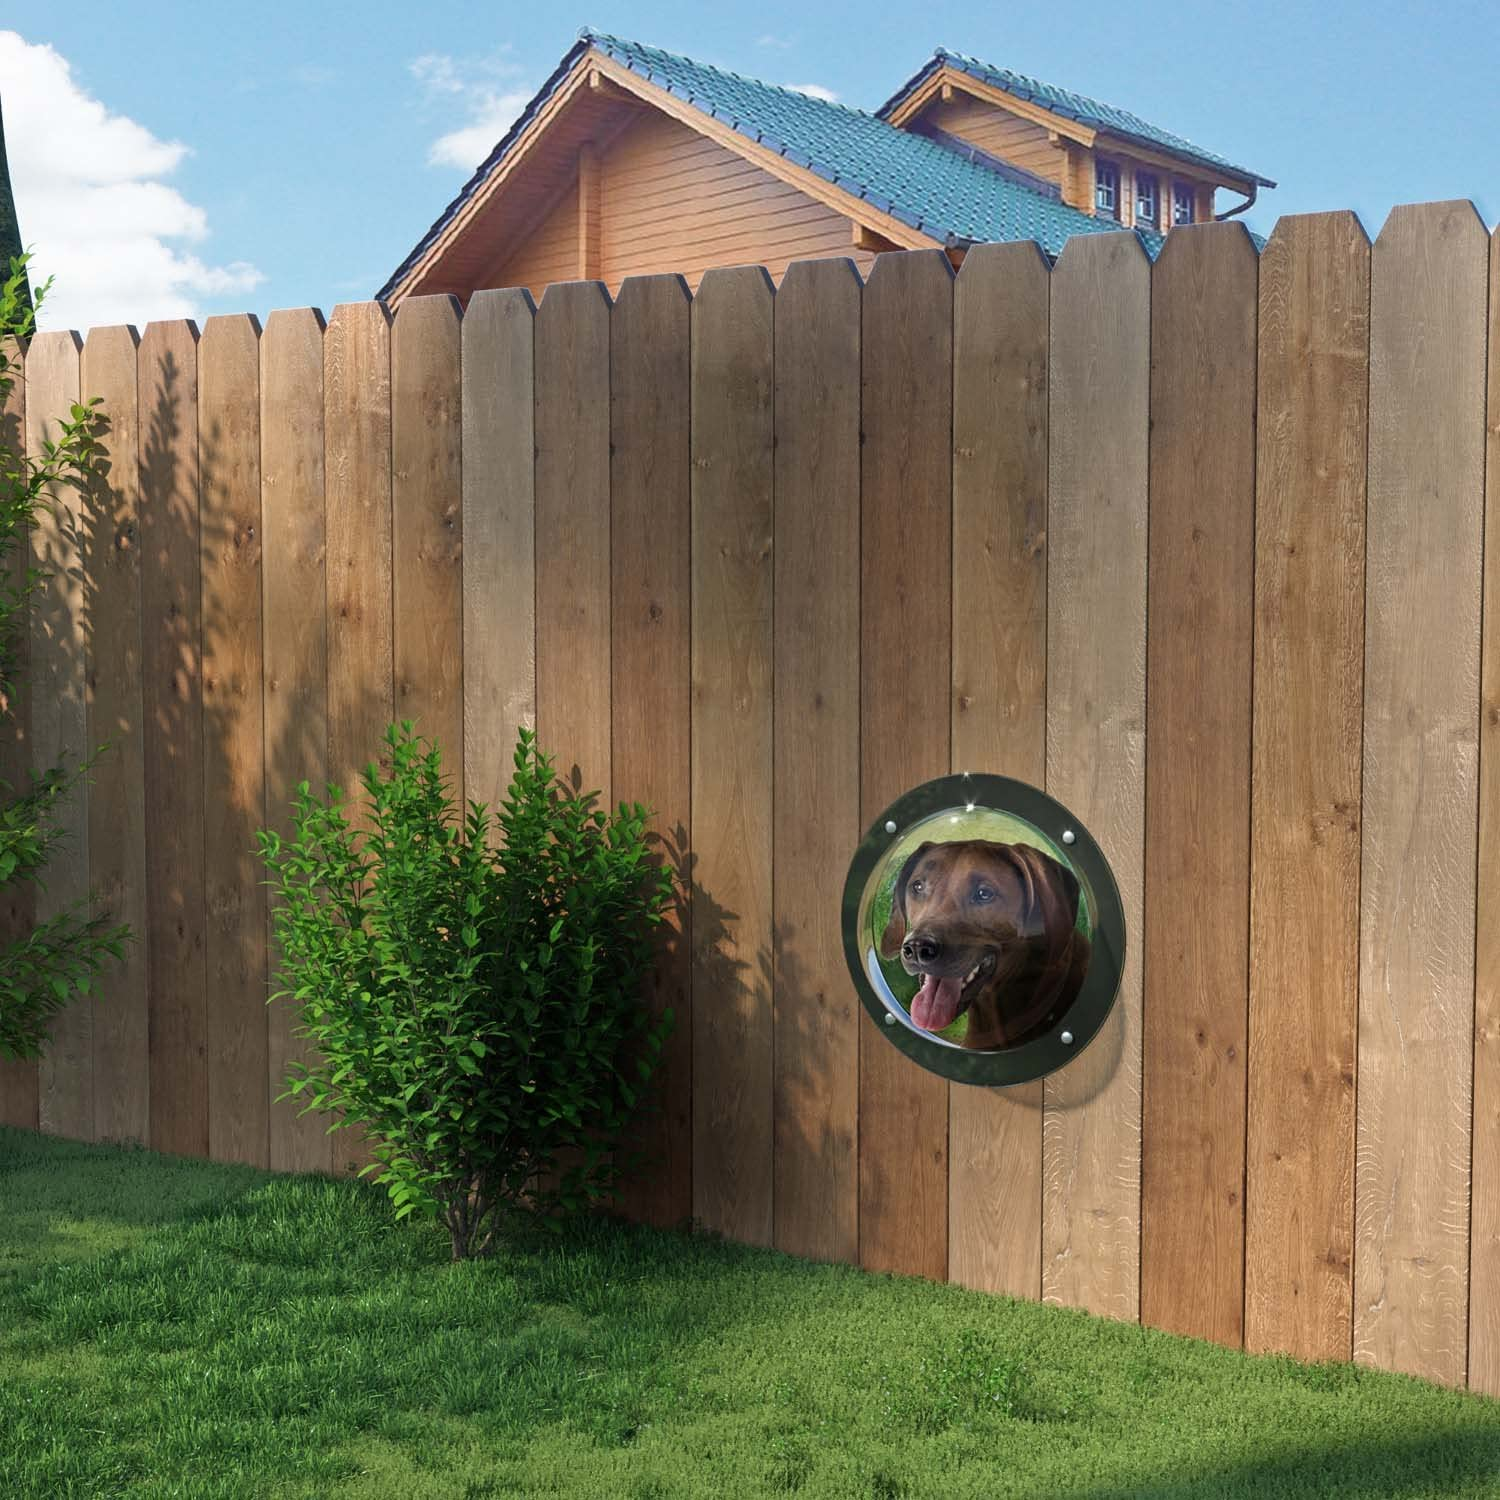 A Porthole Made of Acrylic Glass in 2 colours also for Doghouse Kennel Hut /& Playhouse Gardenscout The Pet Fence Bubble Window for Your Dog Cat or Child